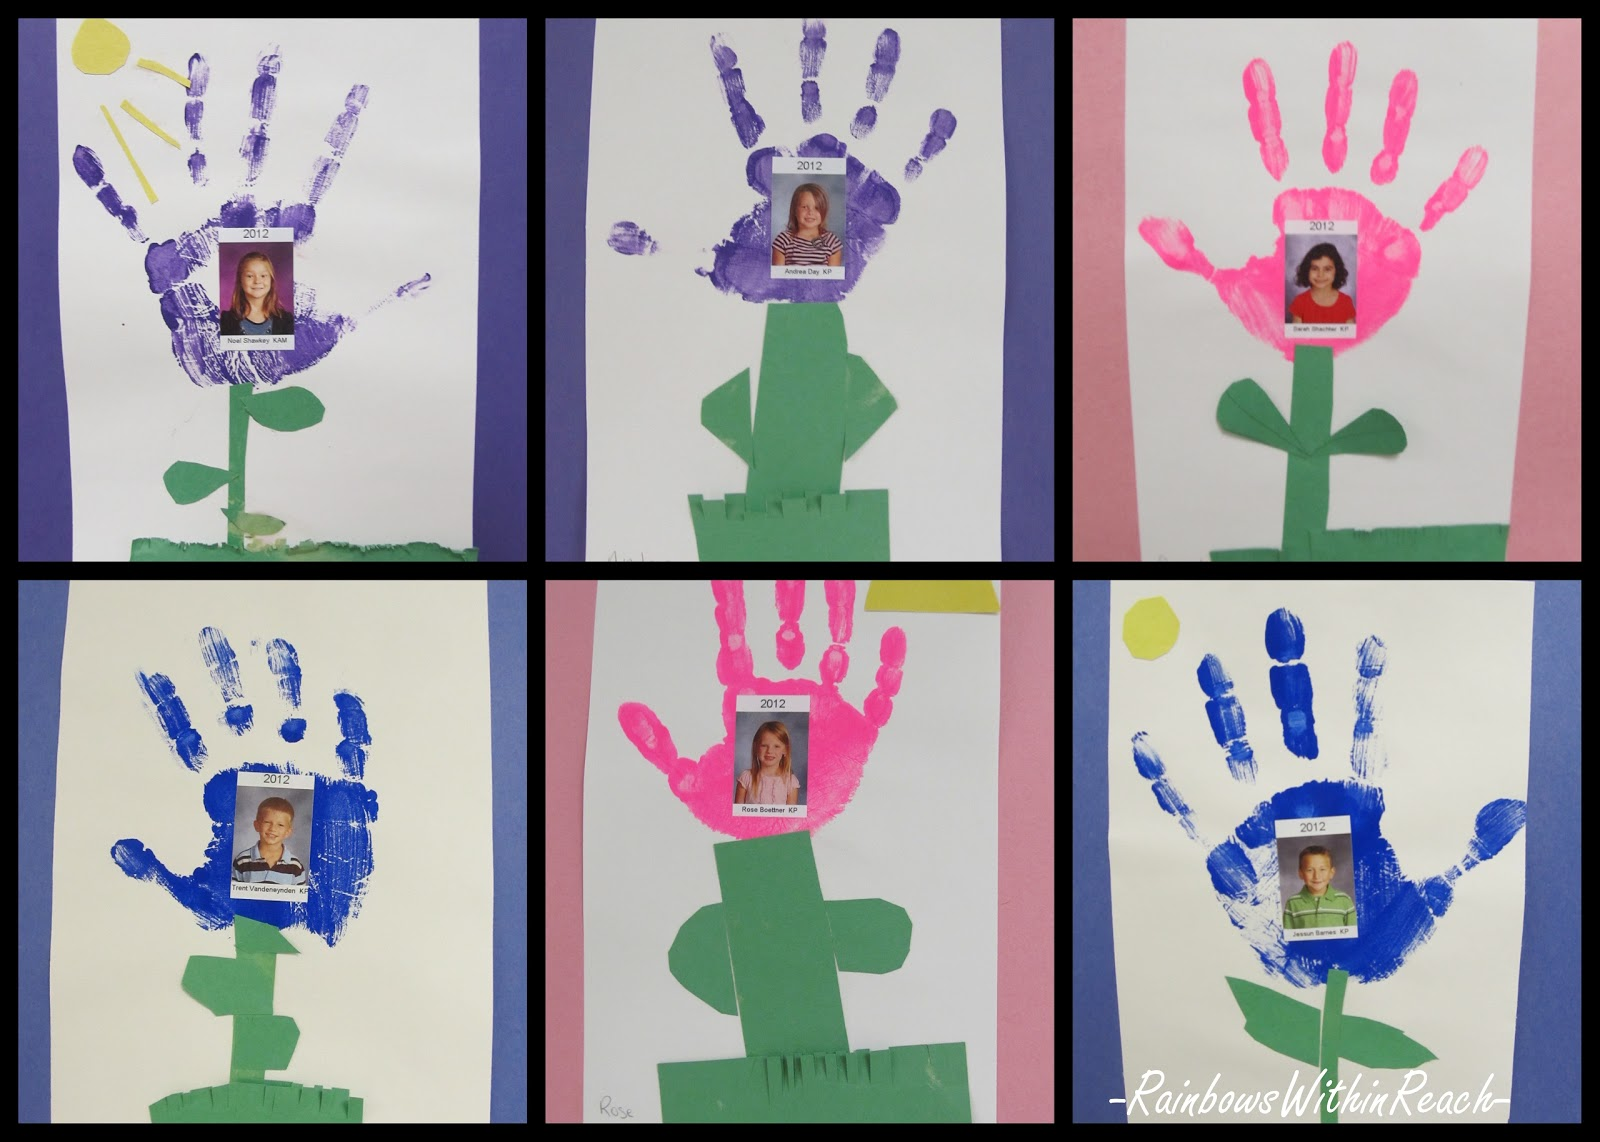 Pre k arts and crafts - Photo Of Handprint Paintings For Kindergarten Mother S Day Art Project Preschool Craft For